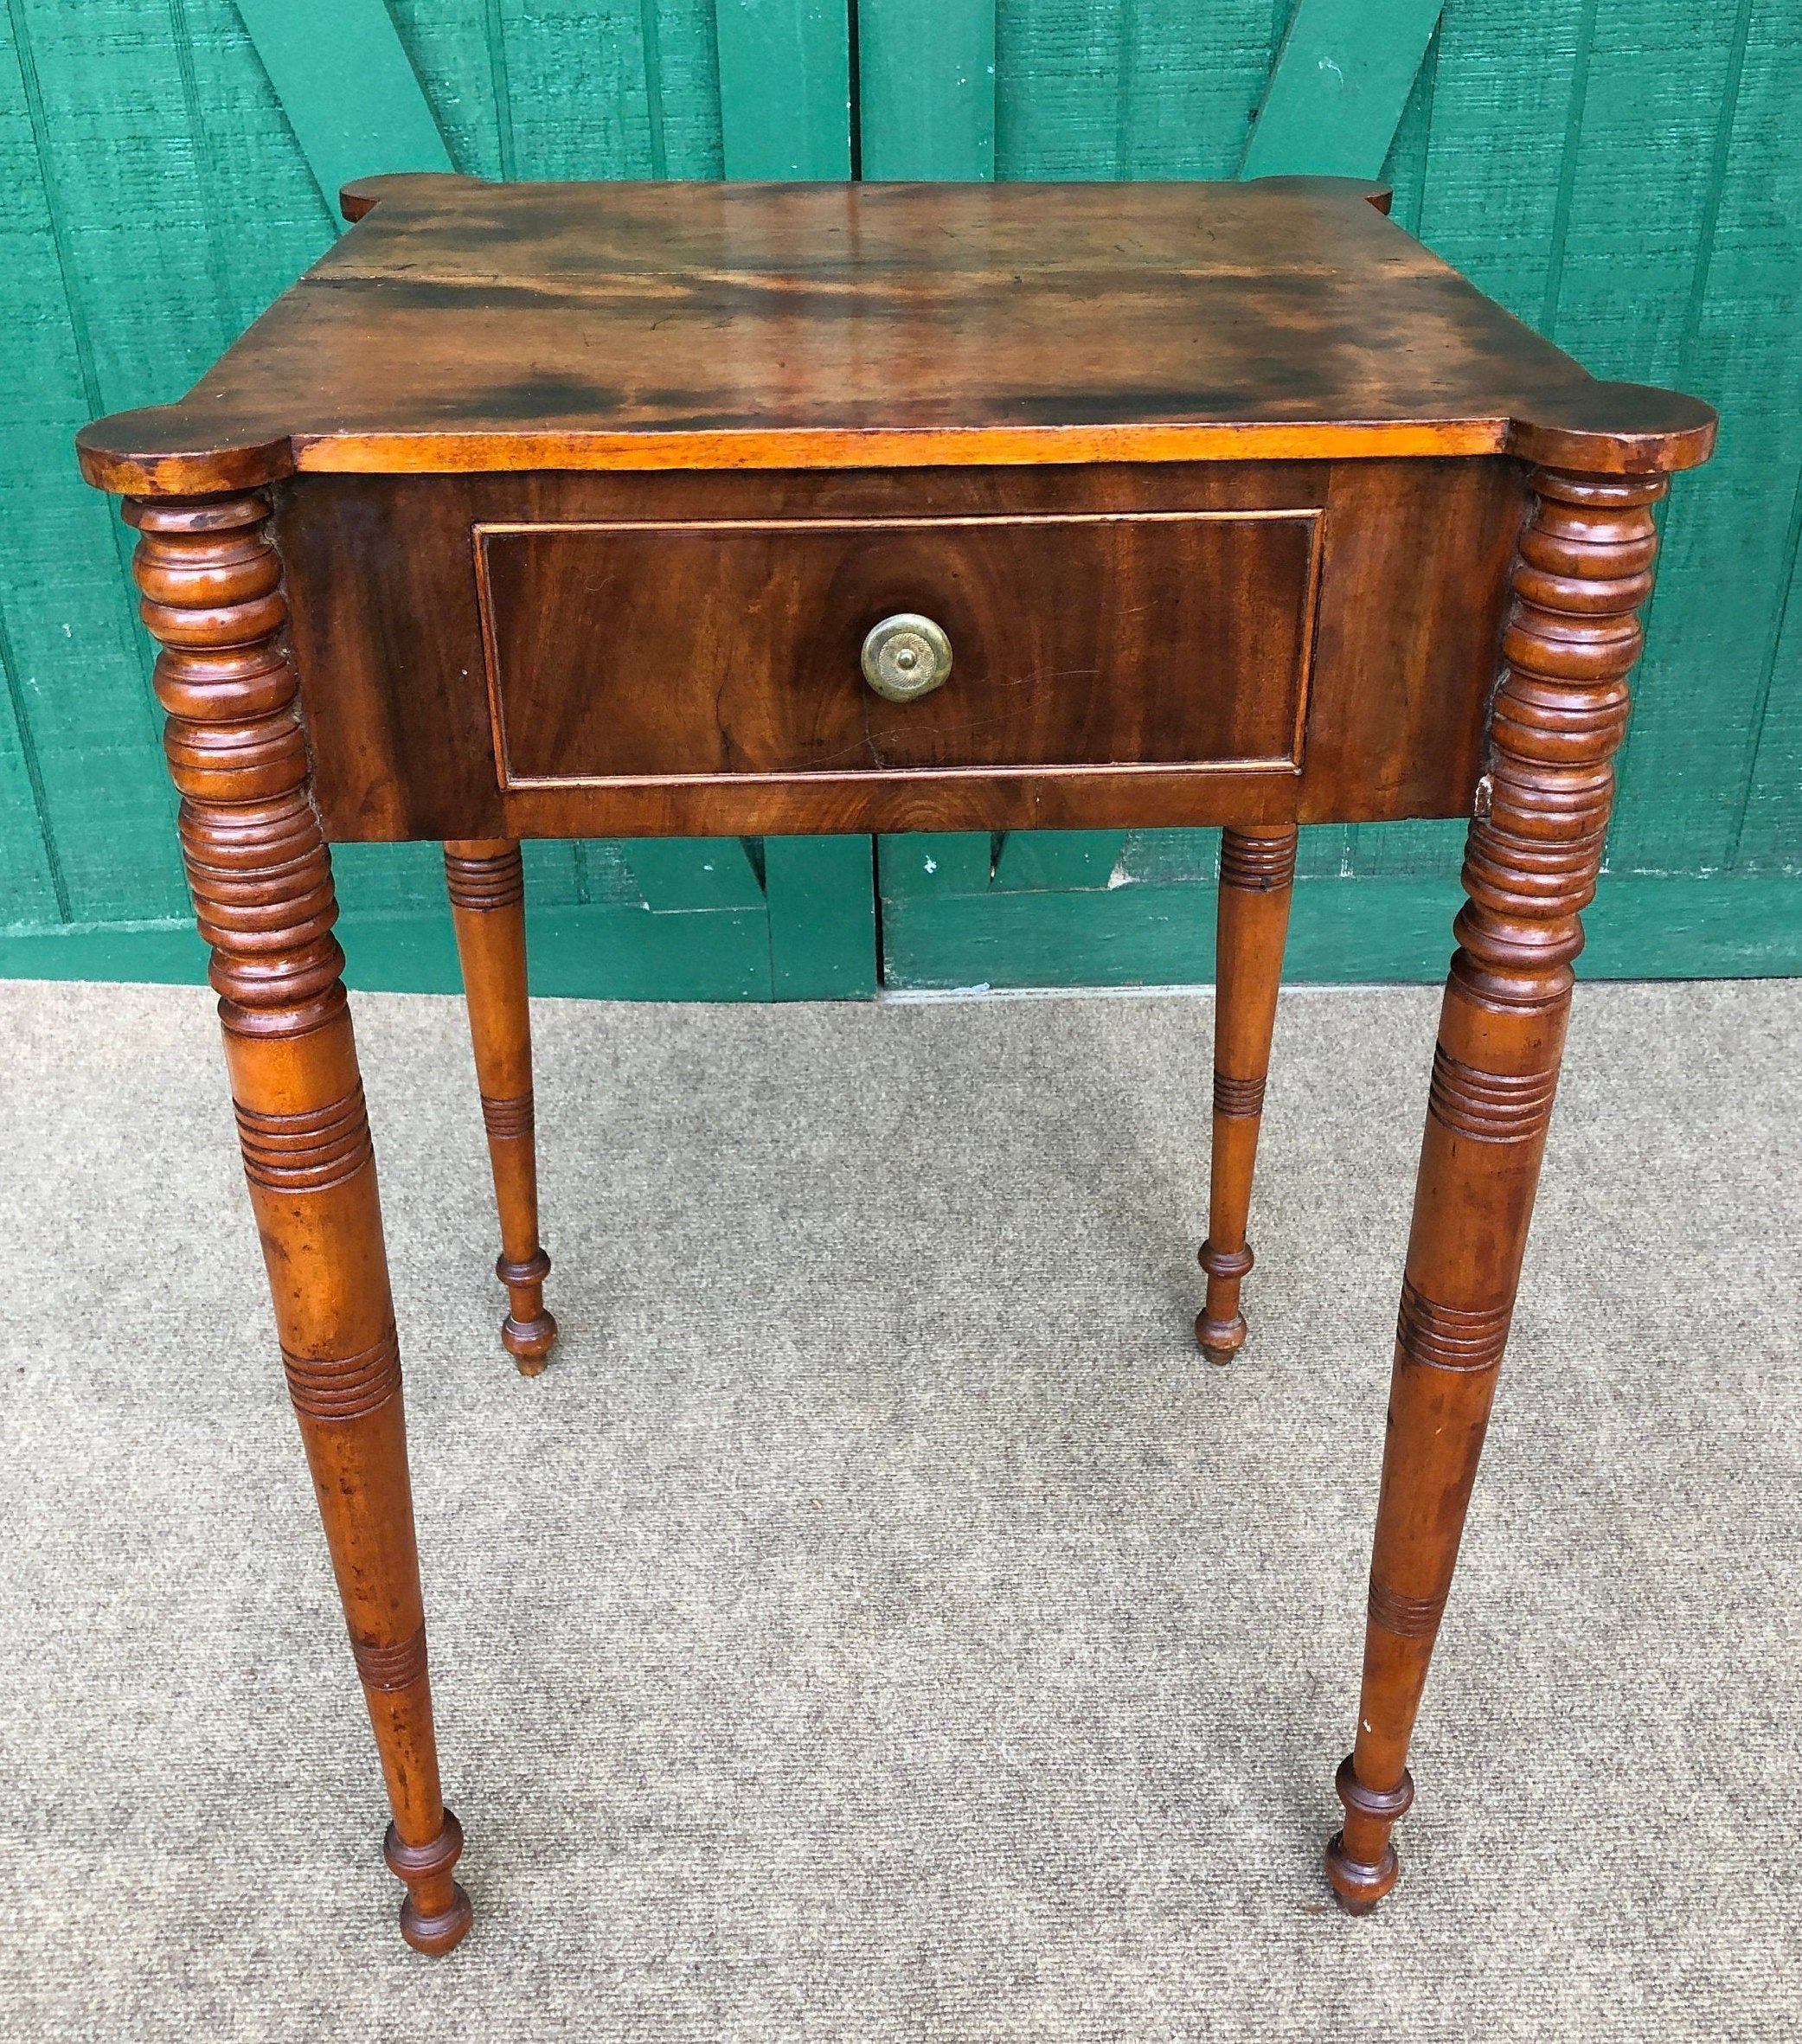 Antique One Drawer Table Hand Turned Legs Ball Feet Mixed Woods Artful Design Booboozbazaar In 2020 Mixed Wood Drawer Table Table